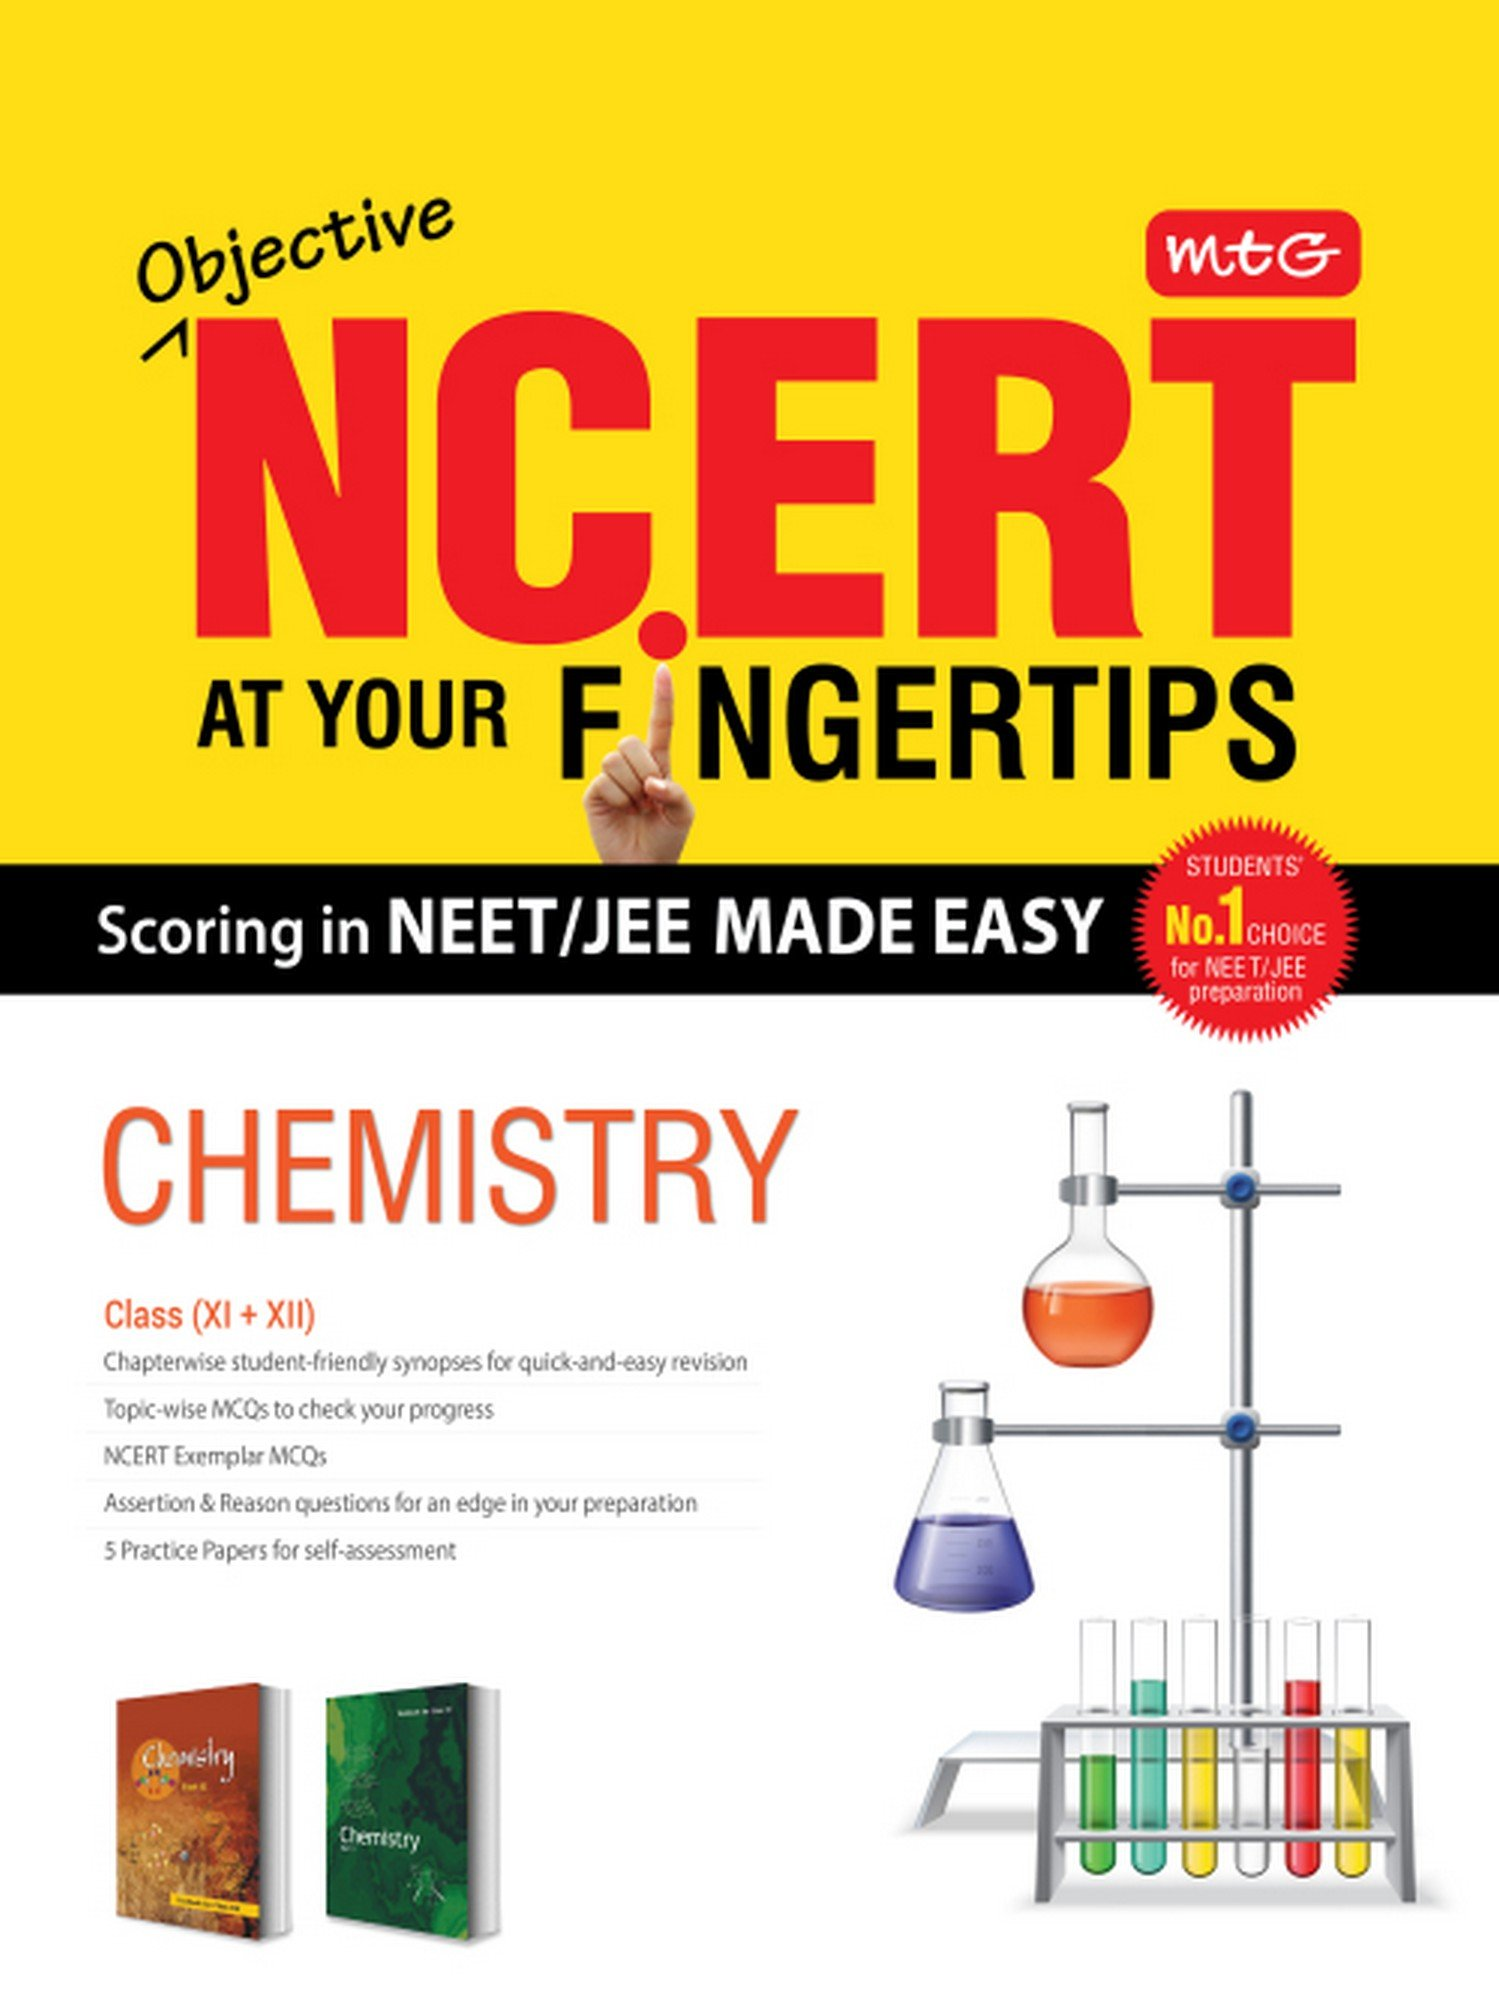 Buy Objective NCERT at Your Fingertips for NEET-JEE MADE EASY - Chemistry  Book Online at Low Prices in India | Objective NCERT at Your Fingertips for  ...